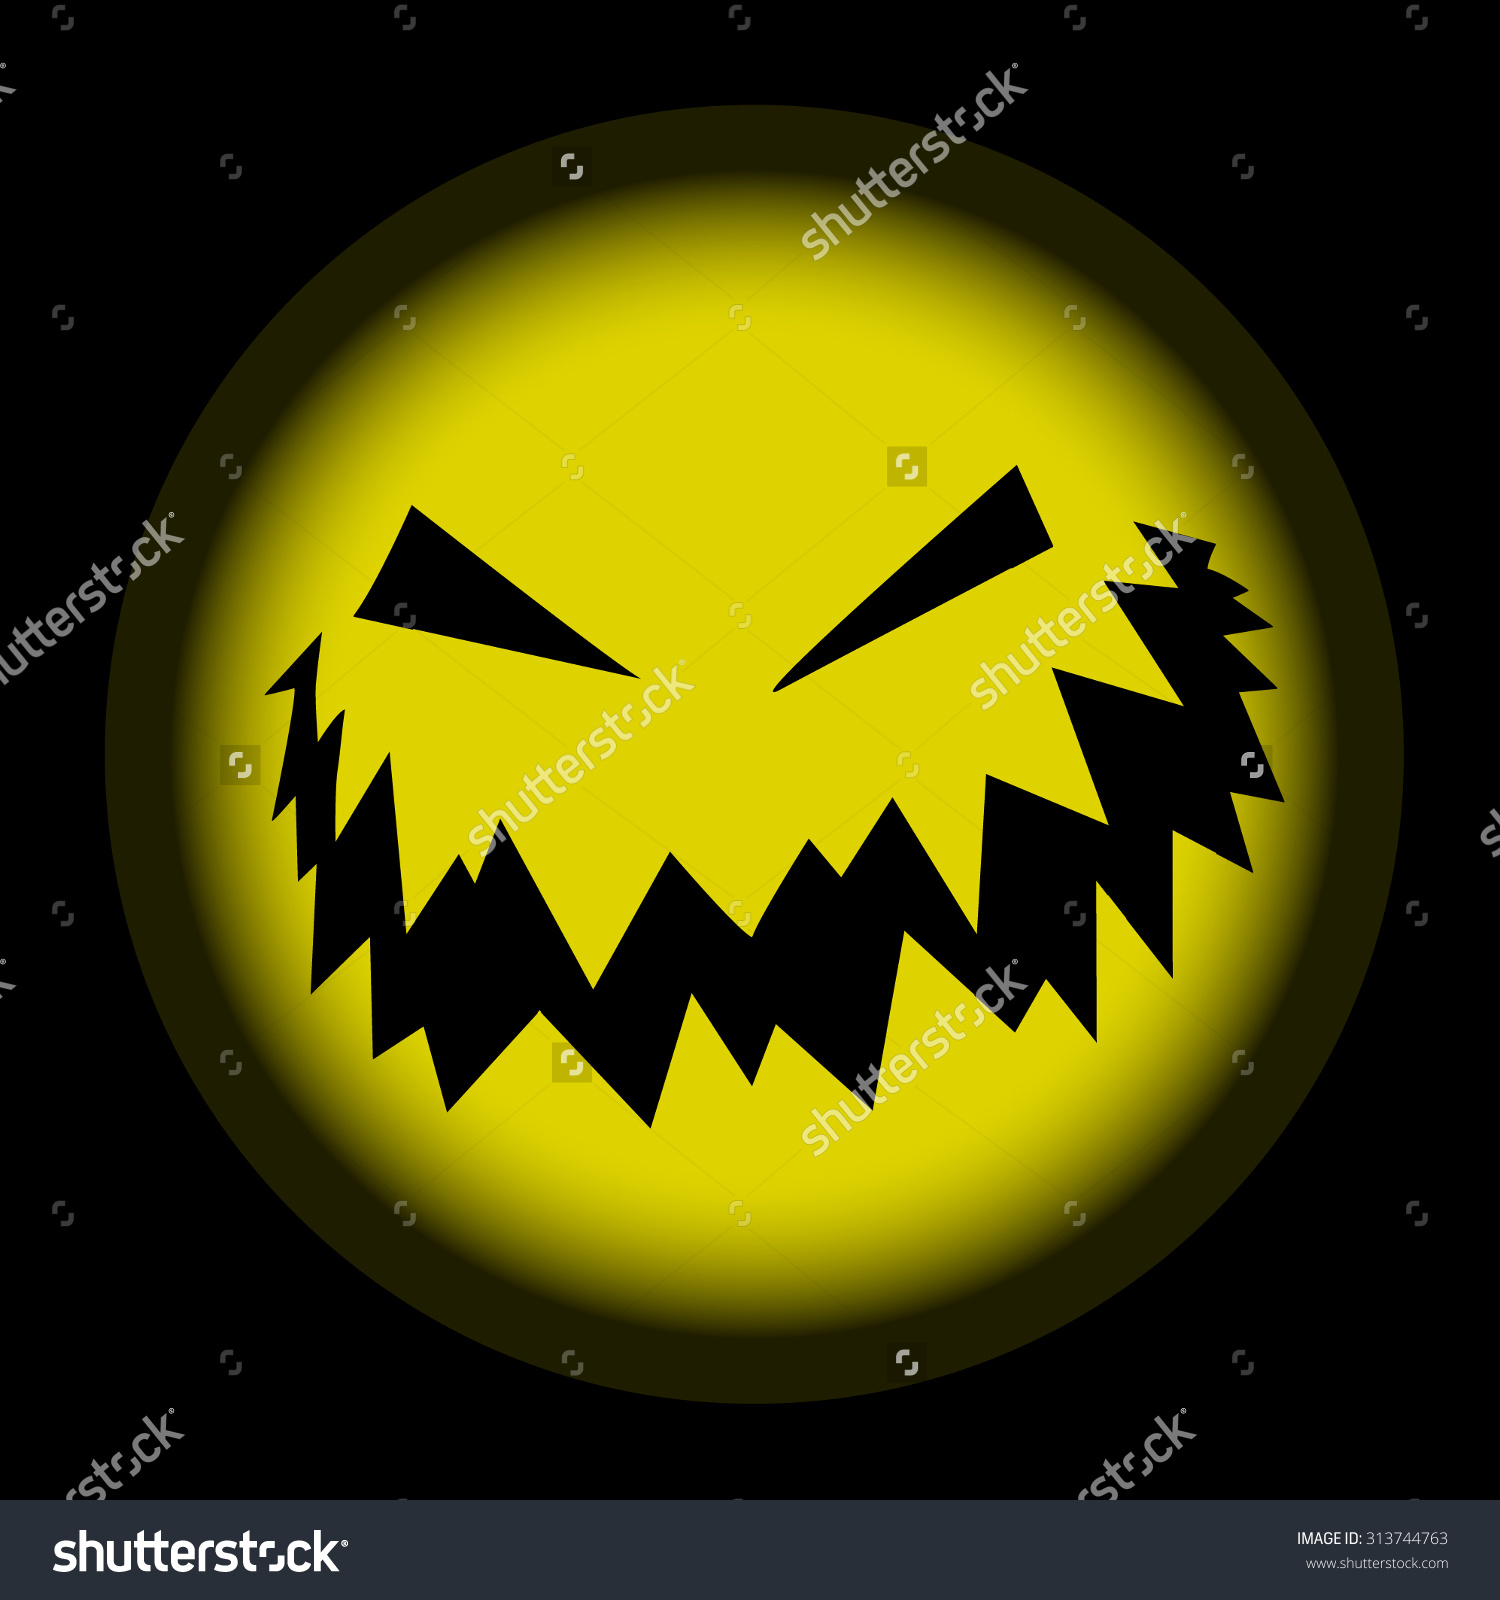 The Ominous Silhouette Of Pumpkins With Carved Teeth And Eyes.